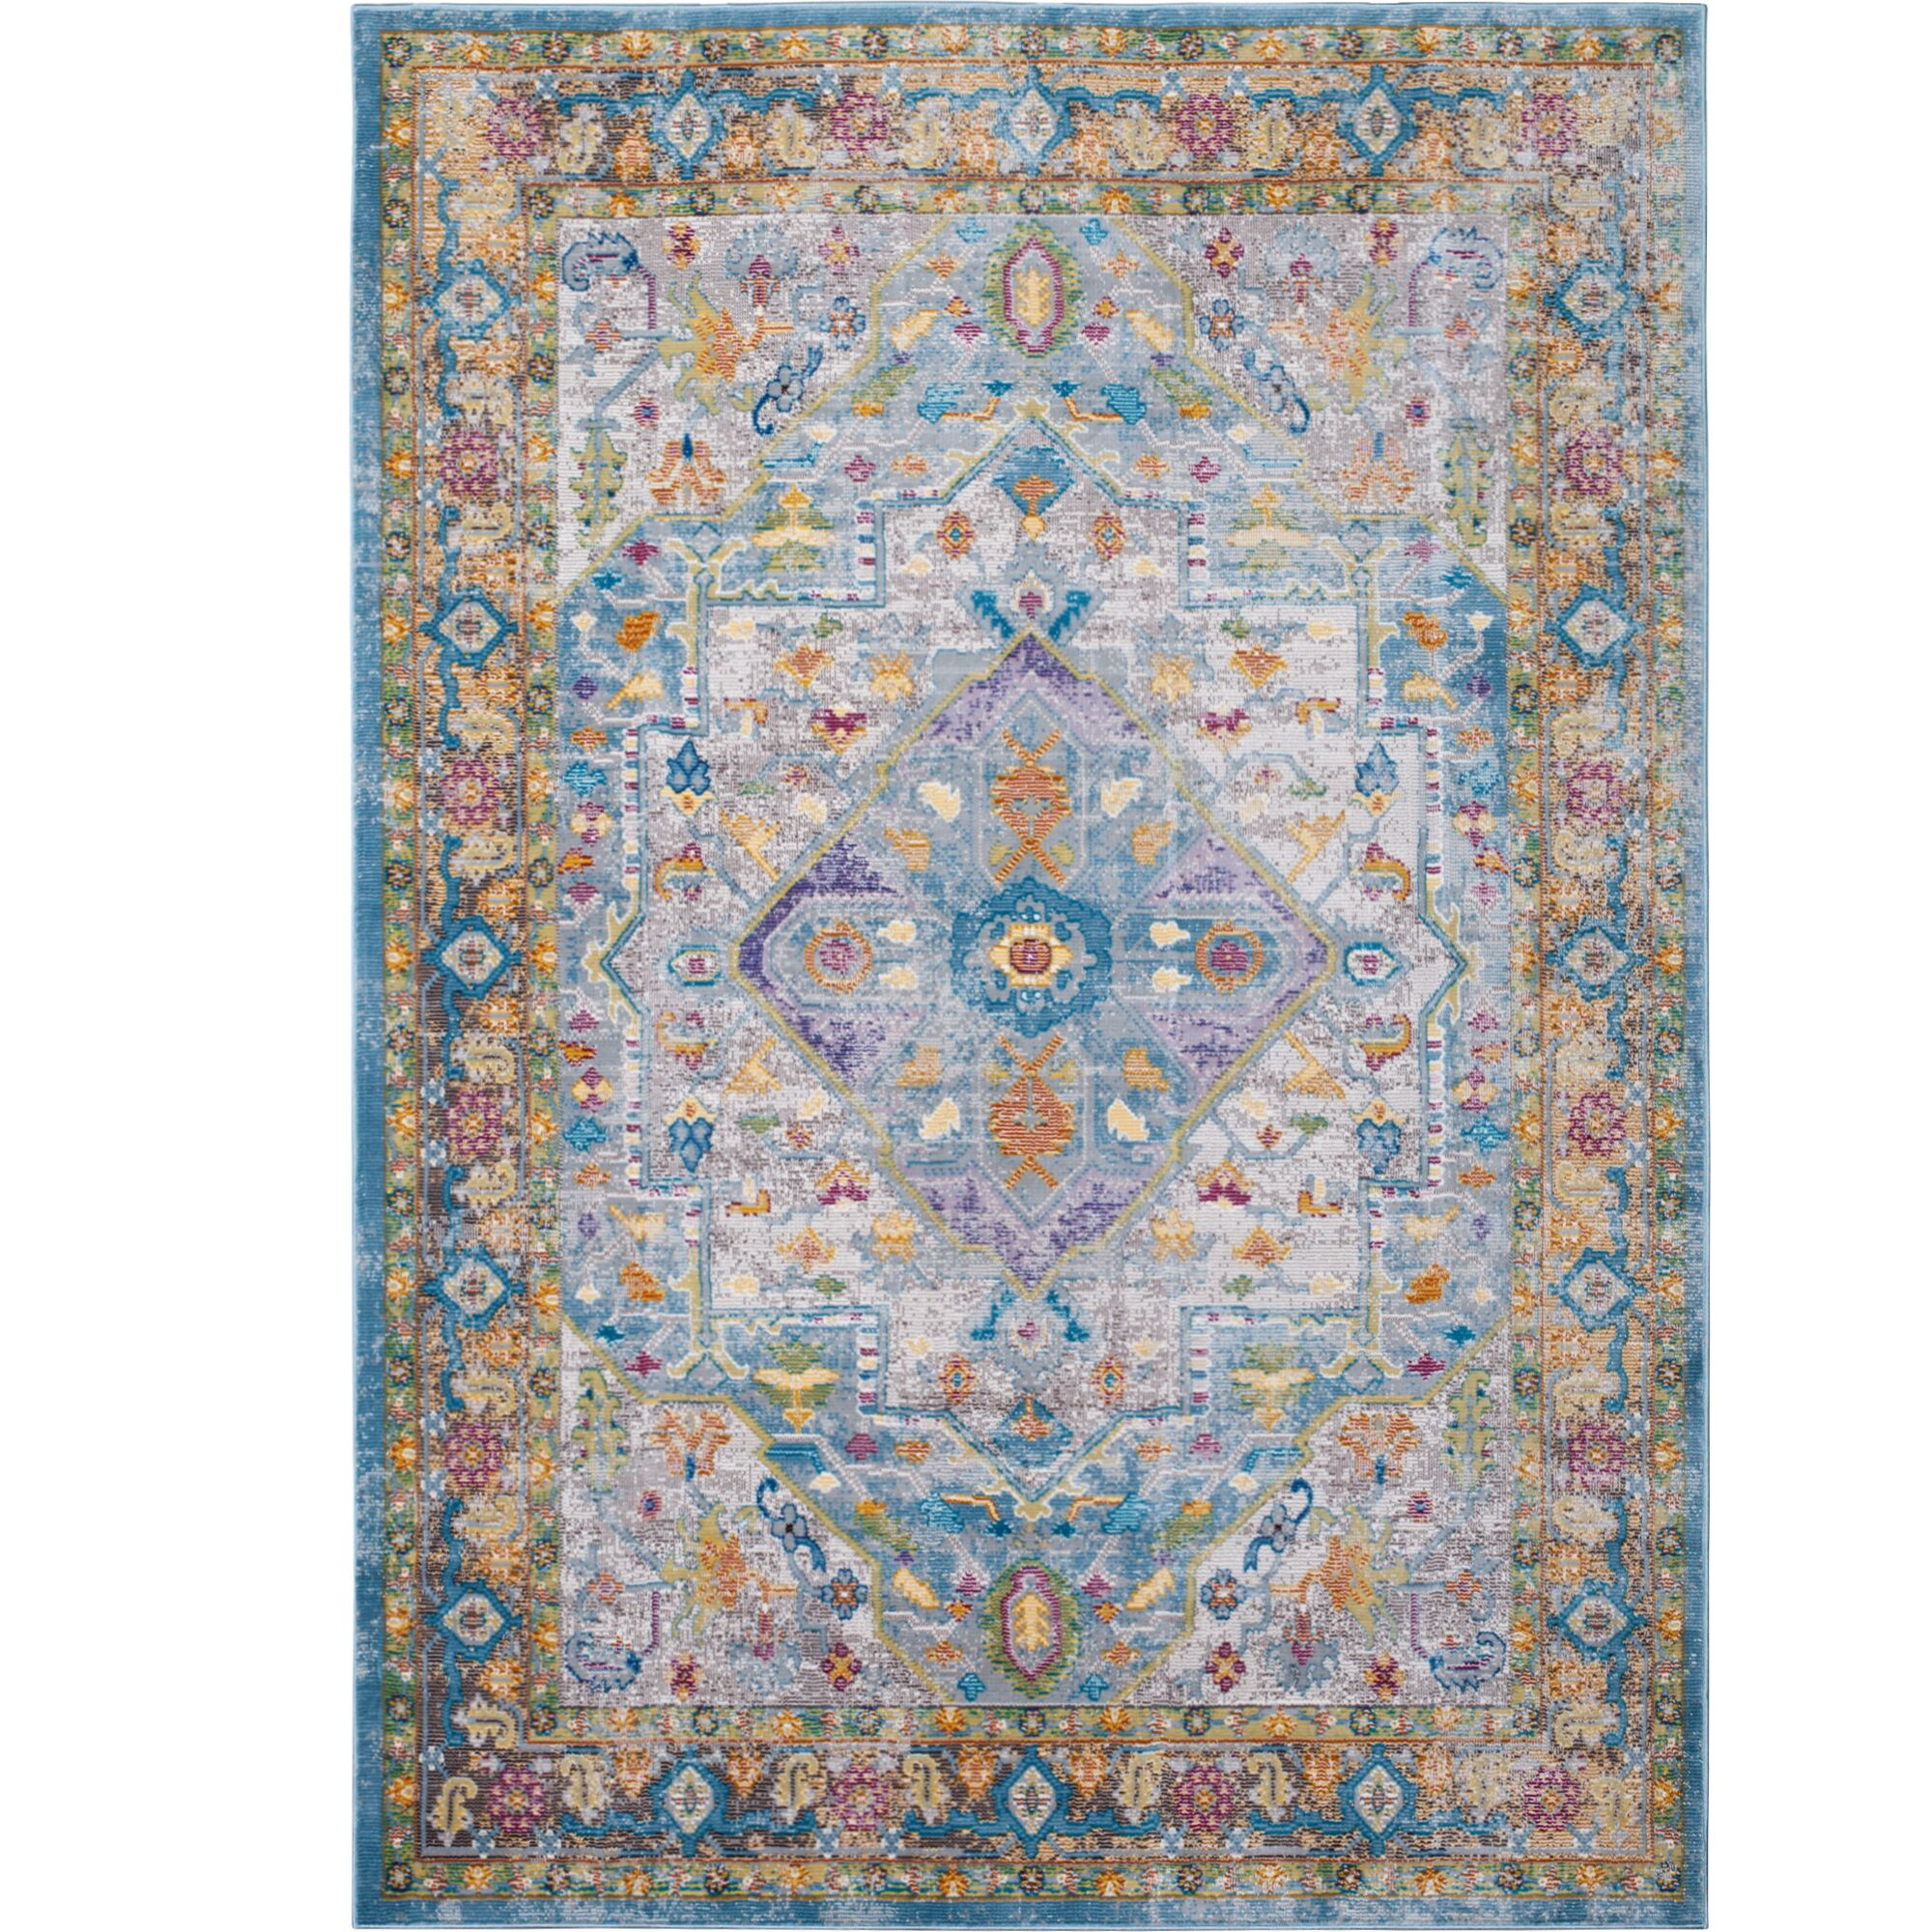 Parlin Medallion Gray/Yellow Area Rug Rug Size: Rectangle 5'3